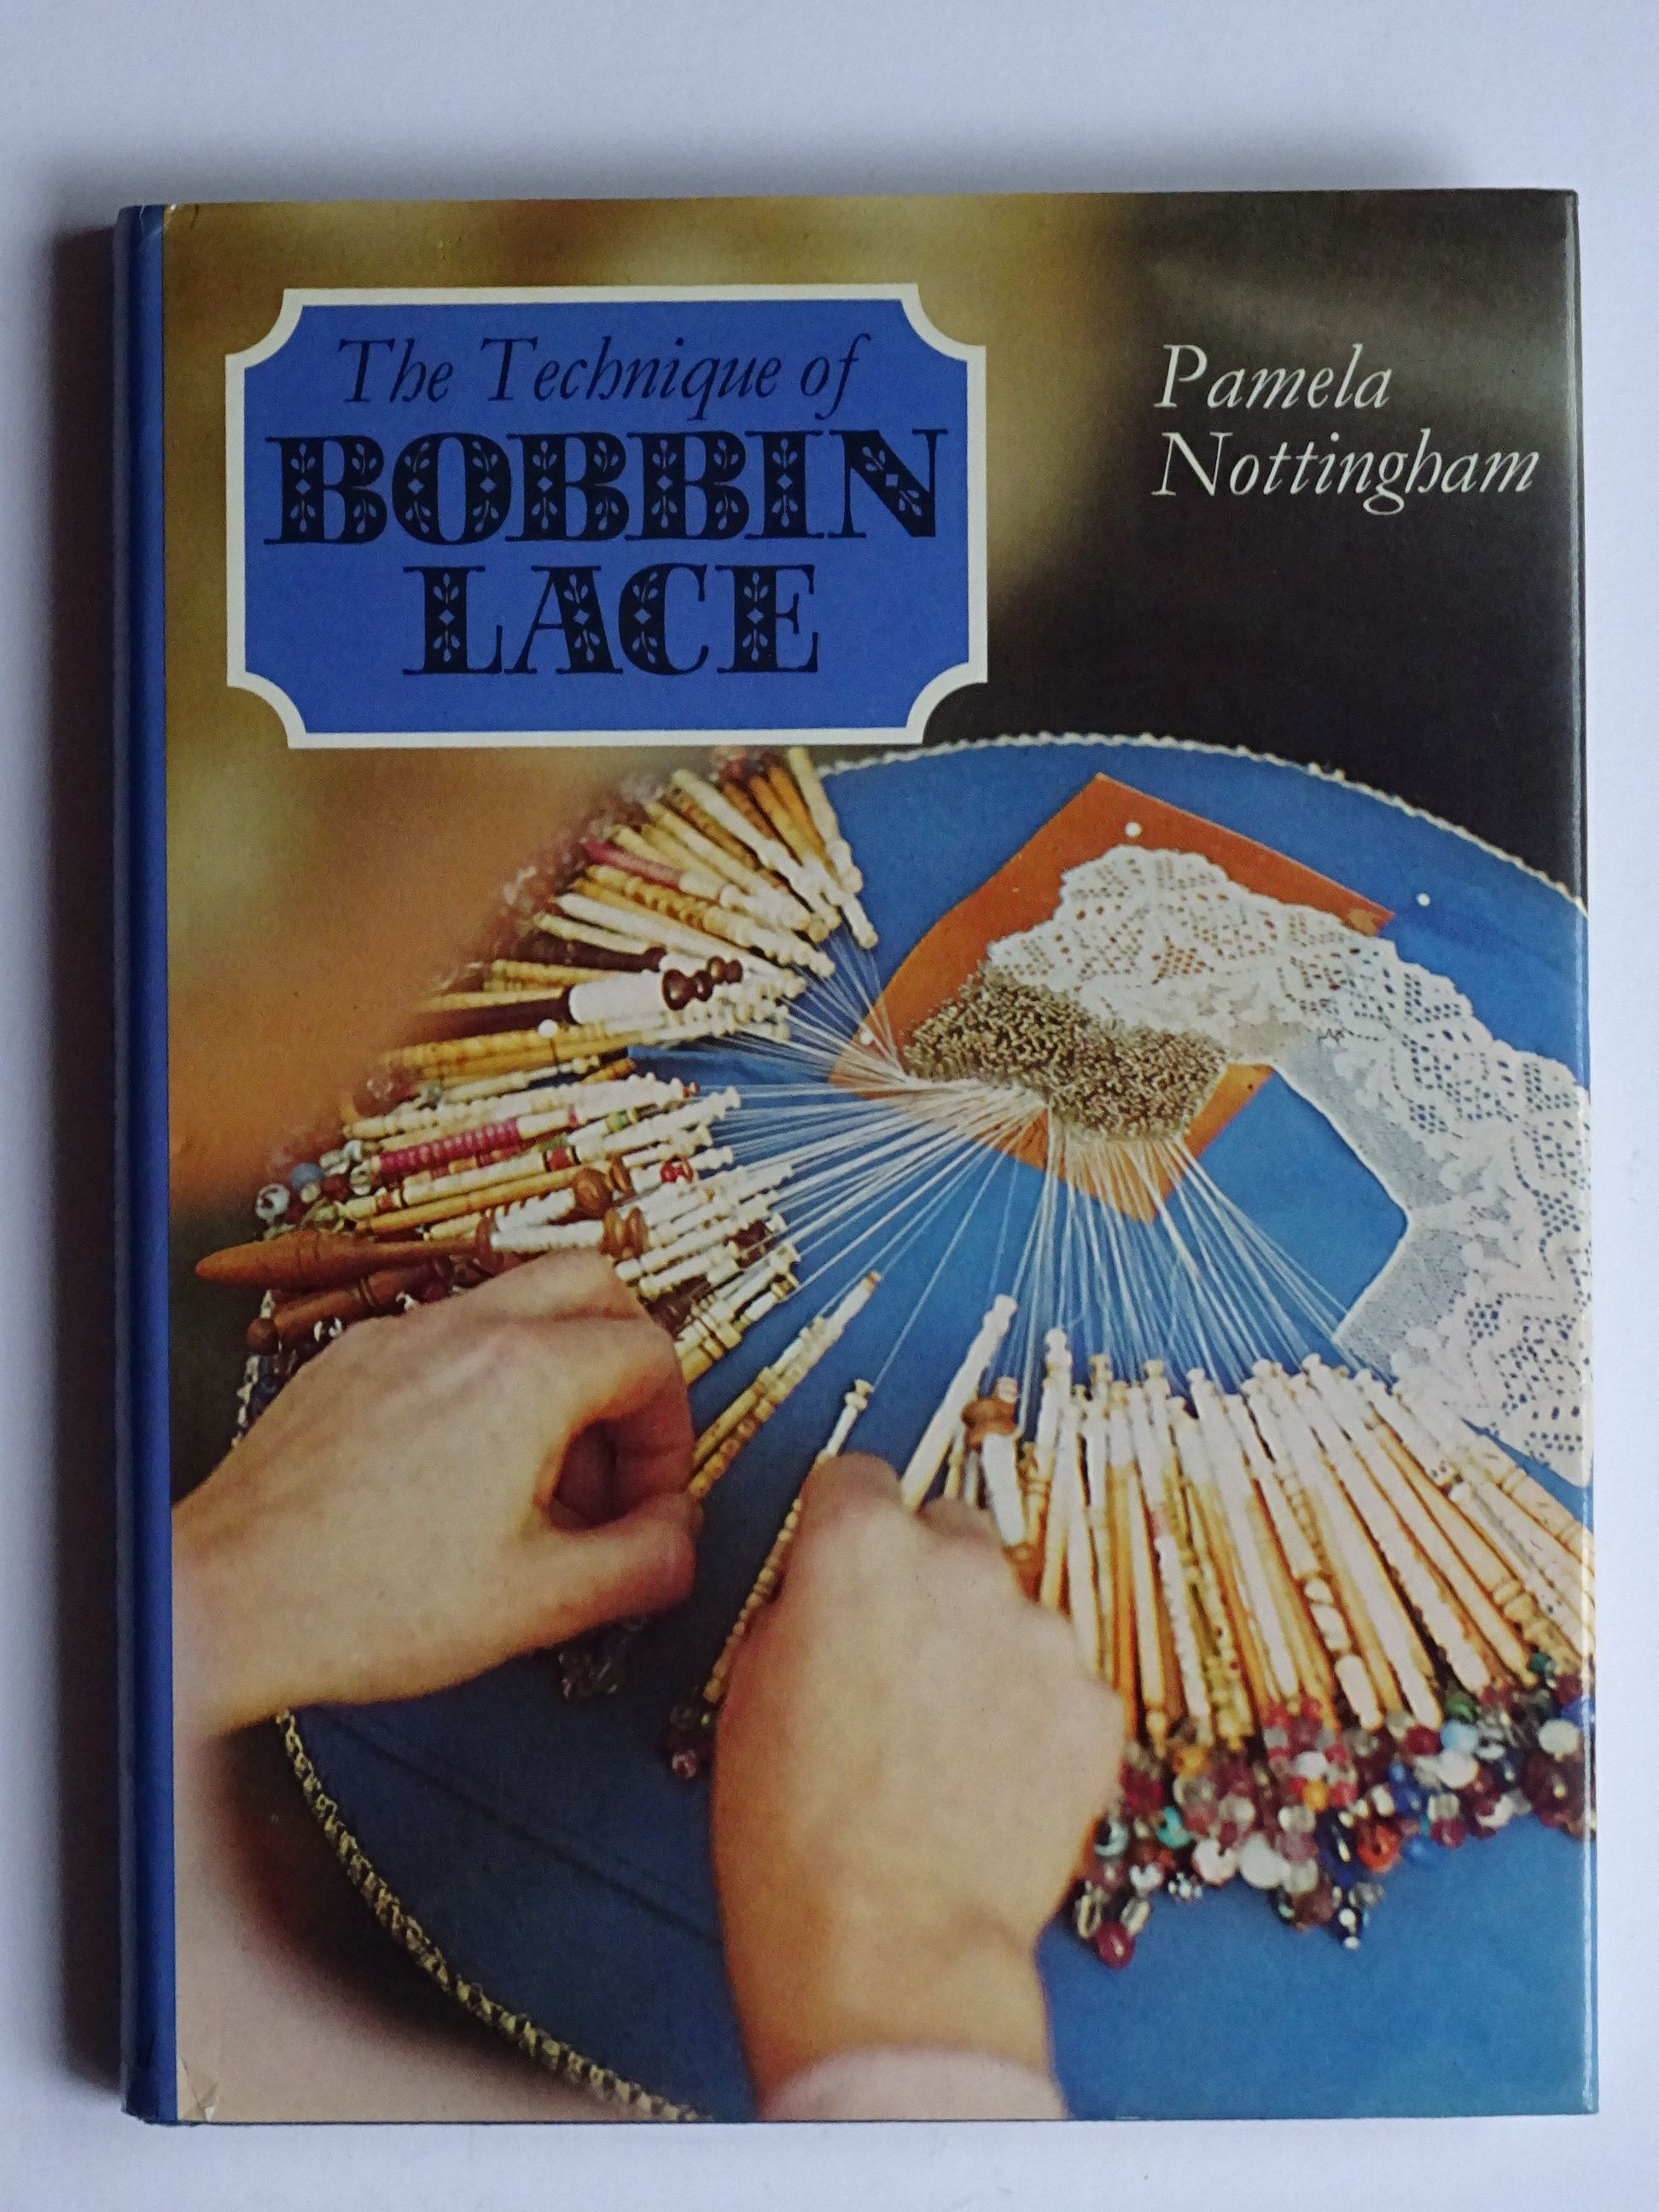 Nottingham, Pamela  -  The Technique of Bobbin Lace,